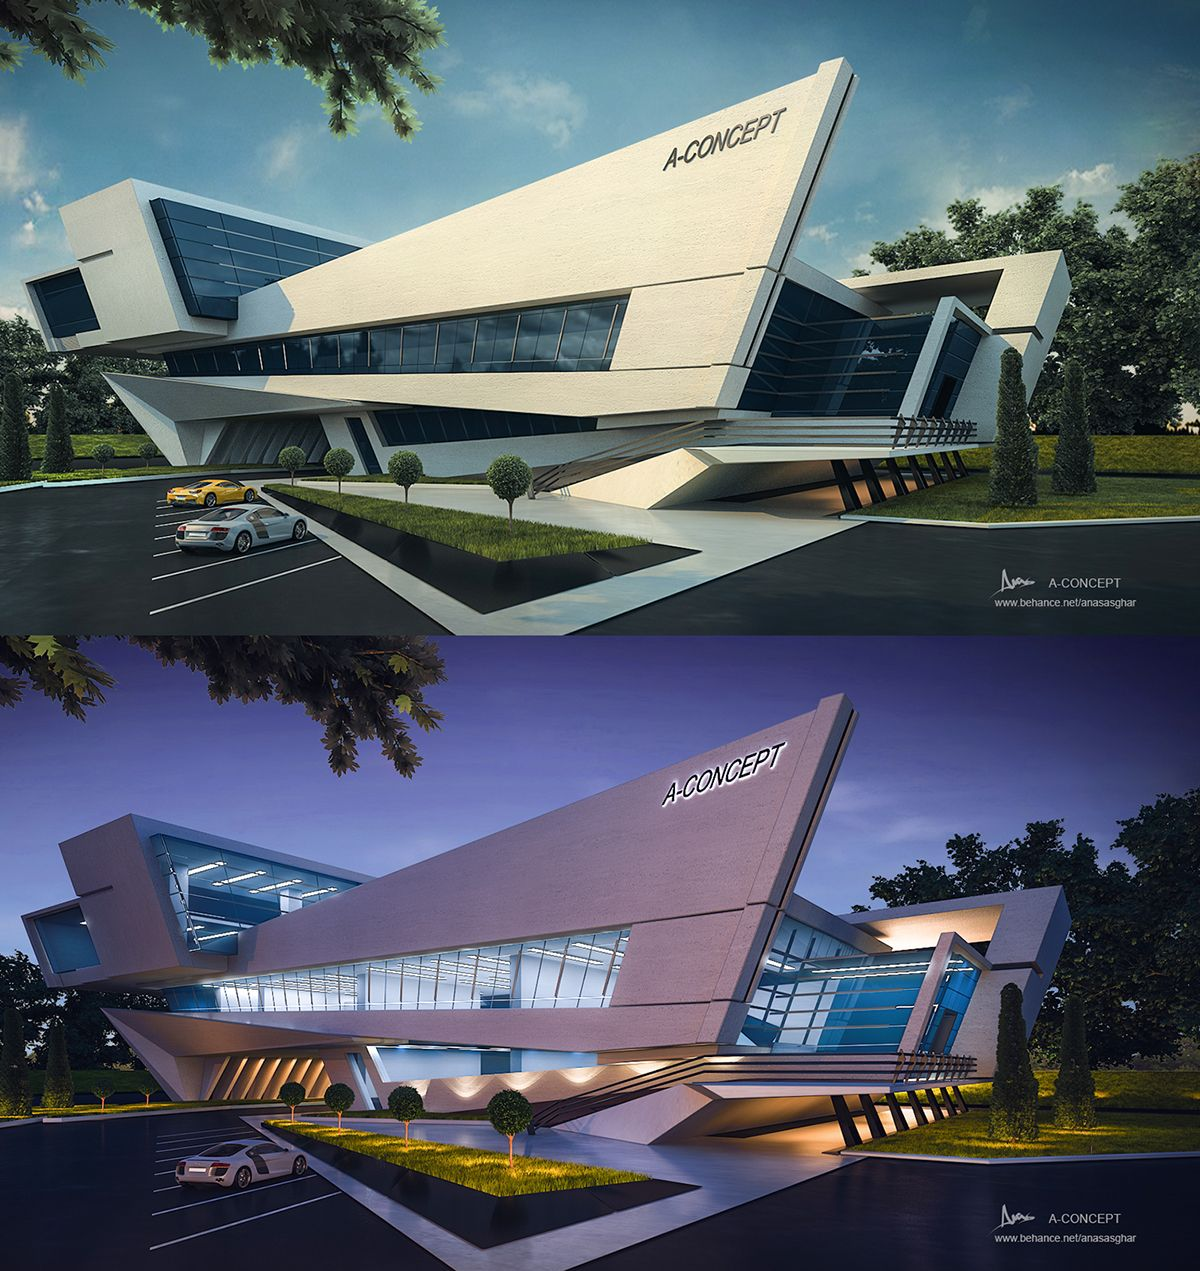 Modern Architecture Concept: A-concept On Behance